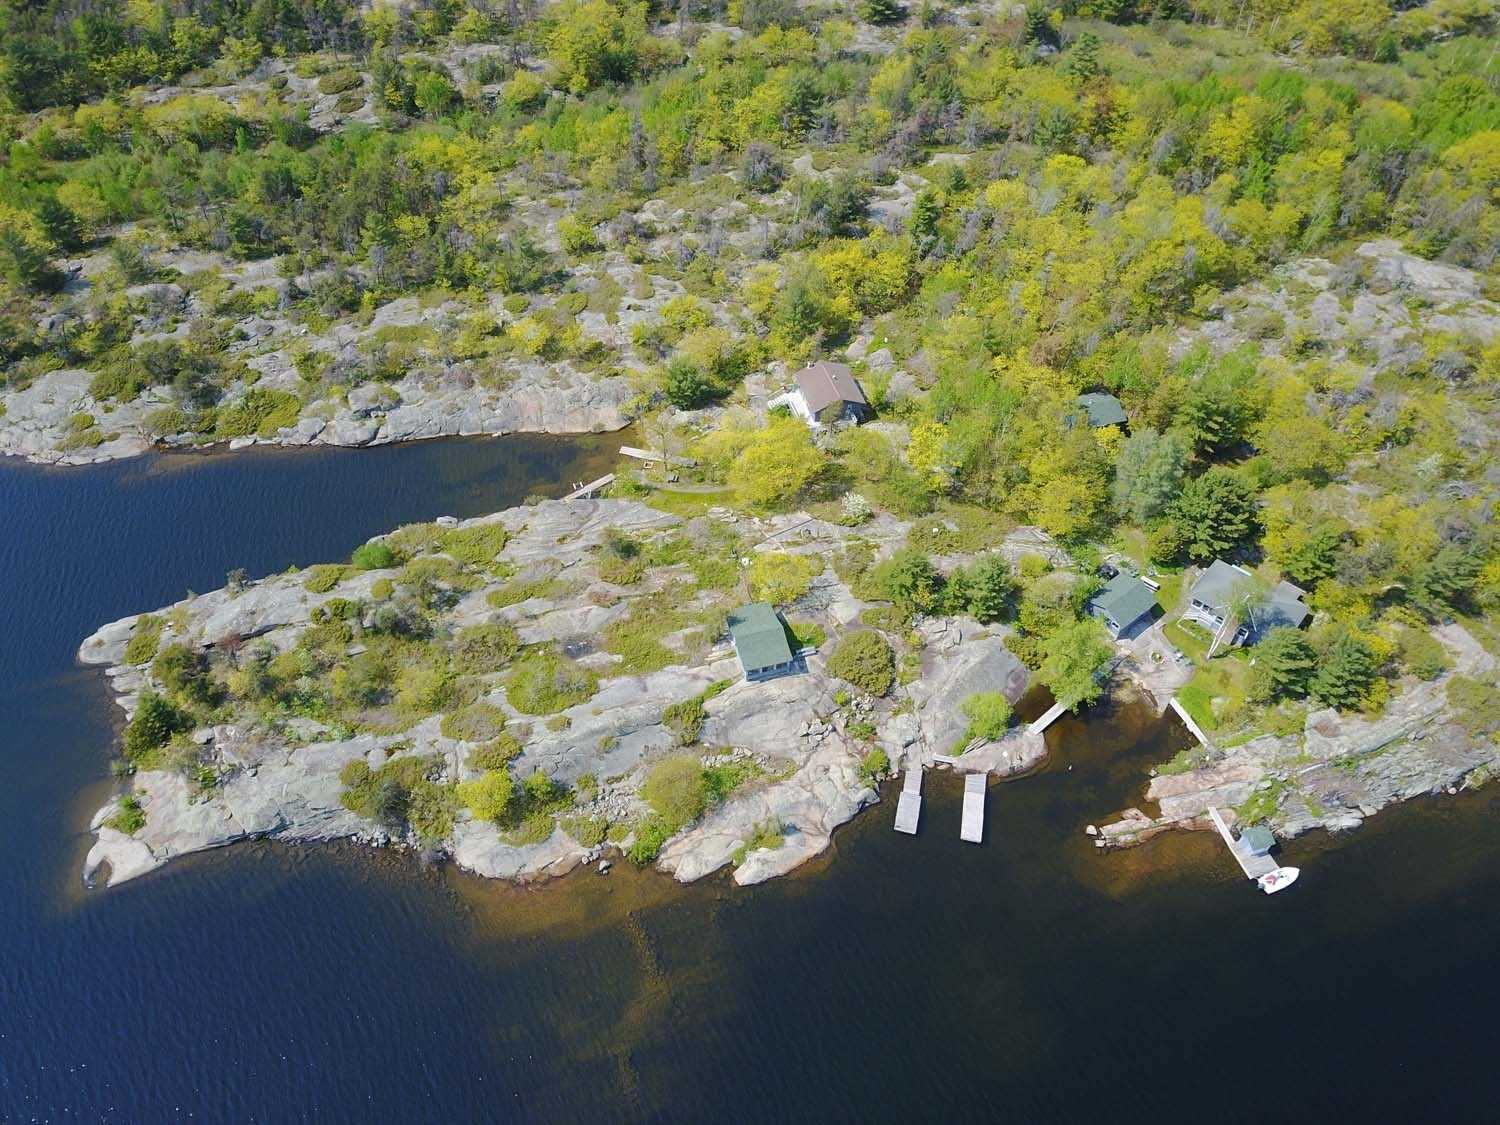 10 Ac In Pointe Au Baril's Georgian Bay Freshwater Granite & Pines Island Community, 900' Frontage, 2 Coves & Private Back Bay. Spectacular West, East & South Views. Surrounded By Undevelopable Natural State Lands. 3 Main Cottages W/ Full Kitchens, Baths & Privacy + 2 Cabins W/ Kitchenettes. 10 Bdrms, Workshop W/ Concrete Floor. Marine Storage Building On The Front Wharf, Floating Docks, Hydro, Some Baseboard Heat, 2 F/P's & Wood Stove In The Cottages.